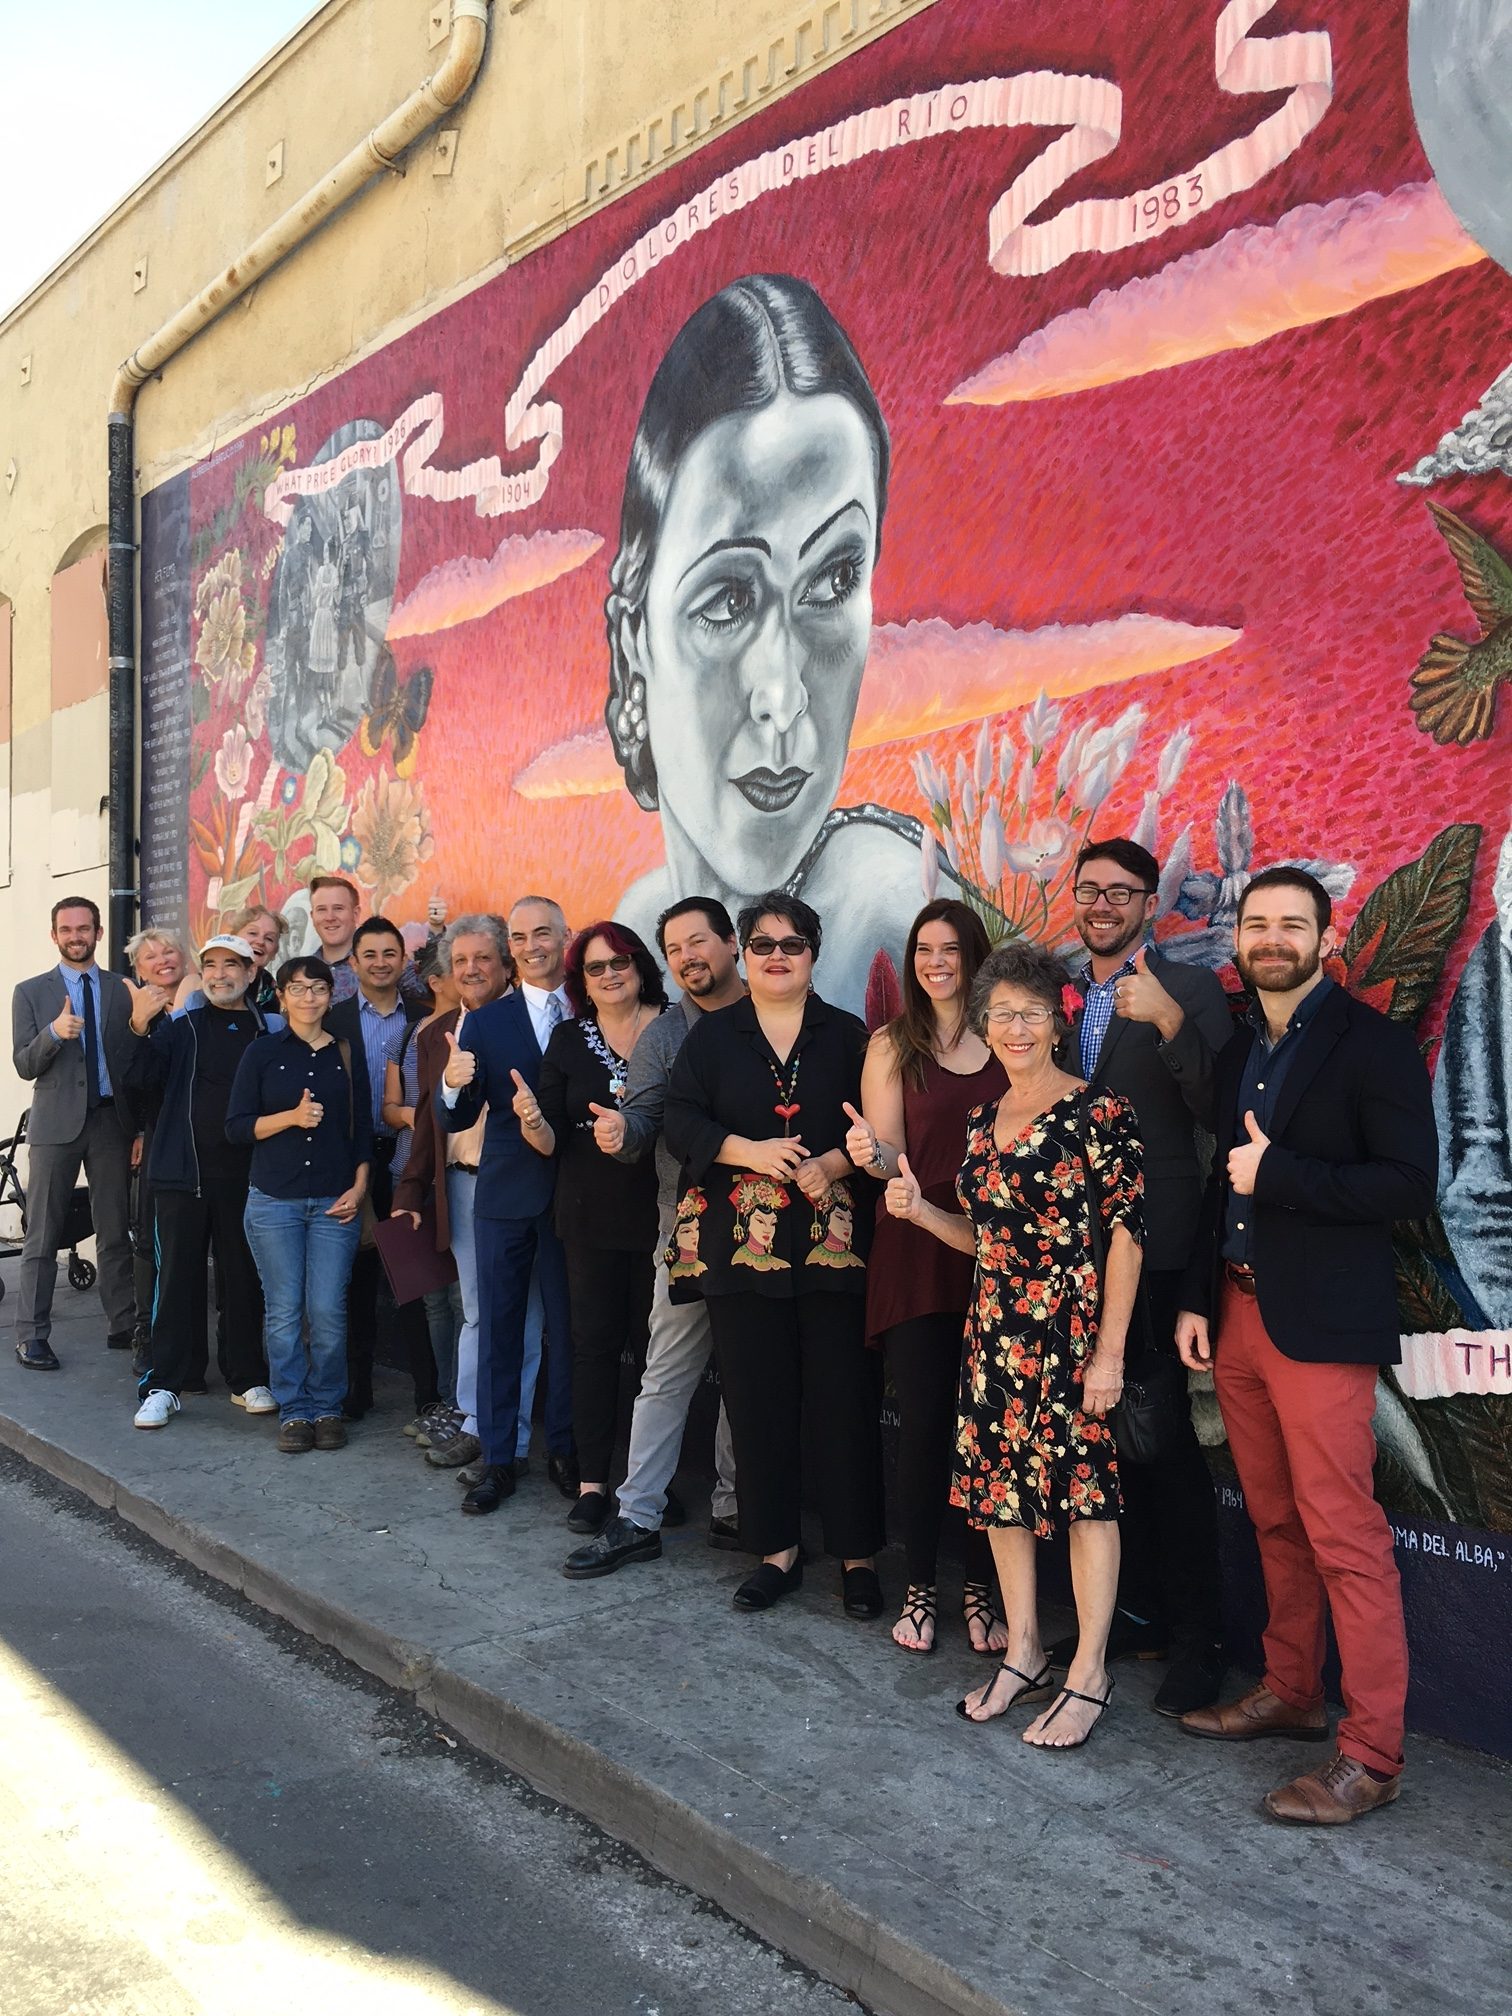 the reawakening of dolores del rio s legacy and alfredo de batuc s artist alfredo de batuc along with sparc founder judy baca and the sparc